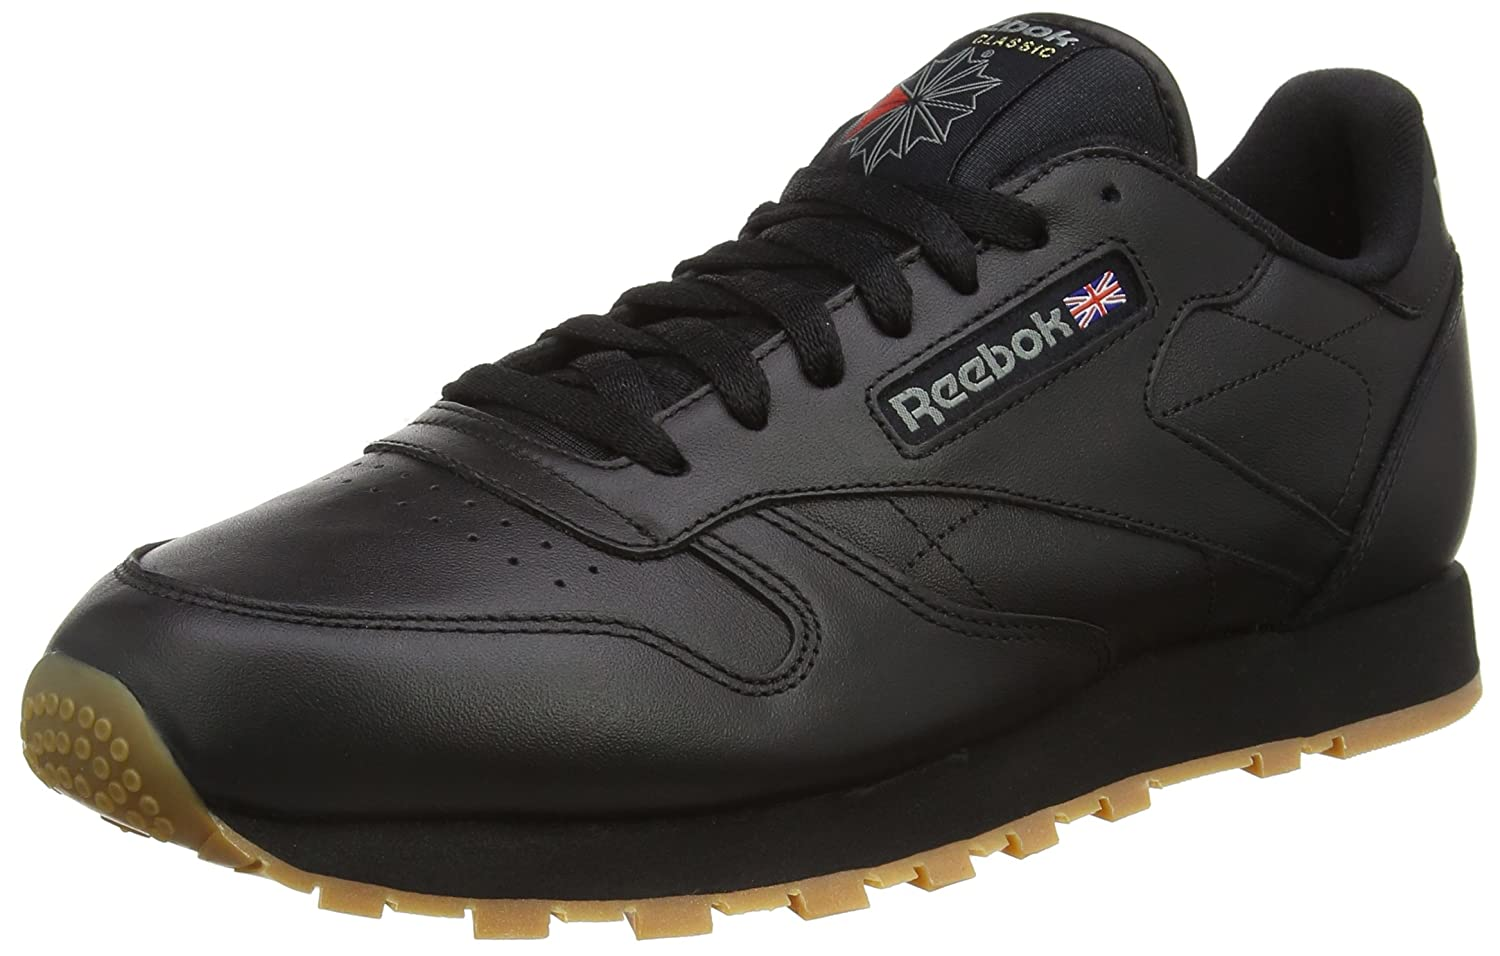 236492ecde2ac Reebok Classic Leather Men s Training Running Shoes  Amazon.co.uk  Shoes    Bags